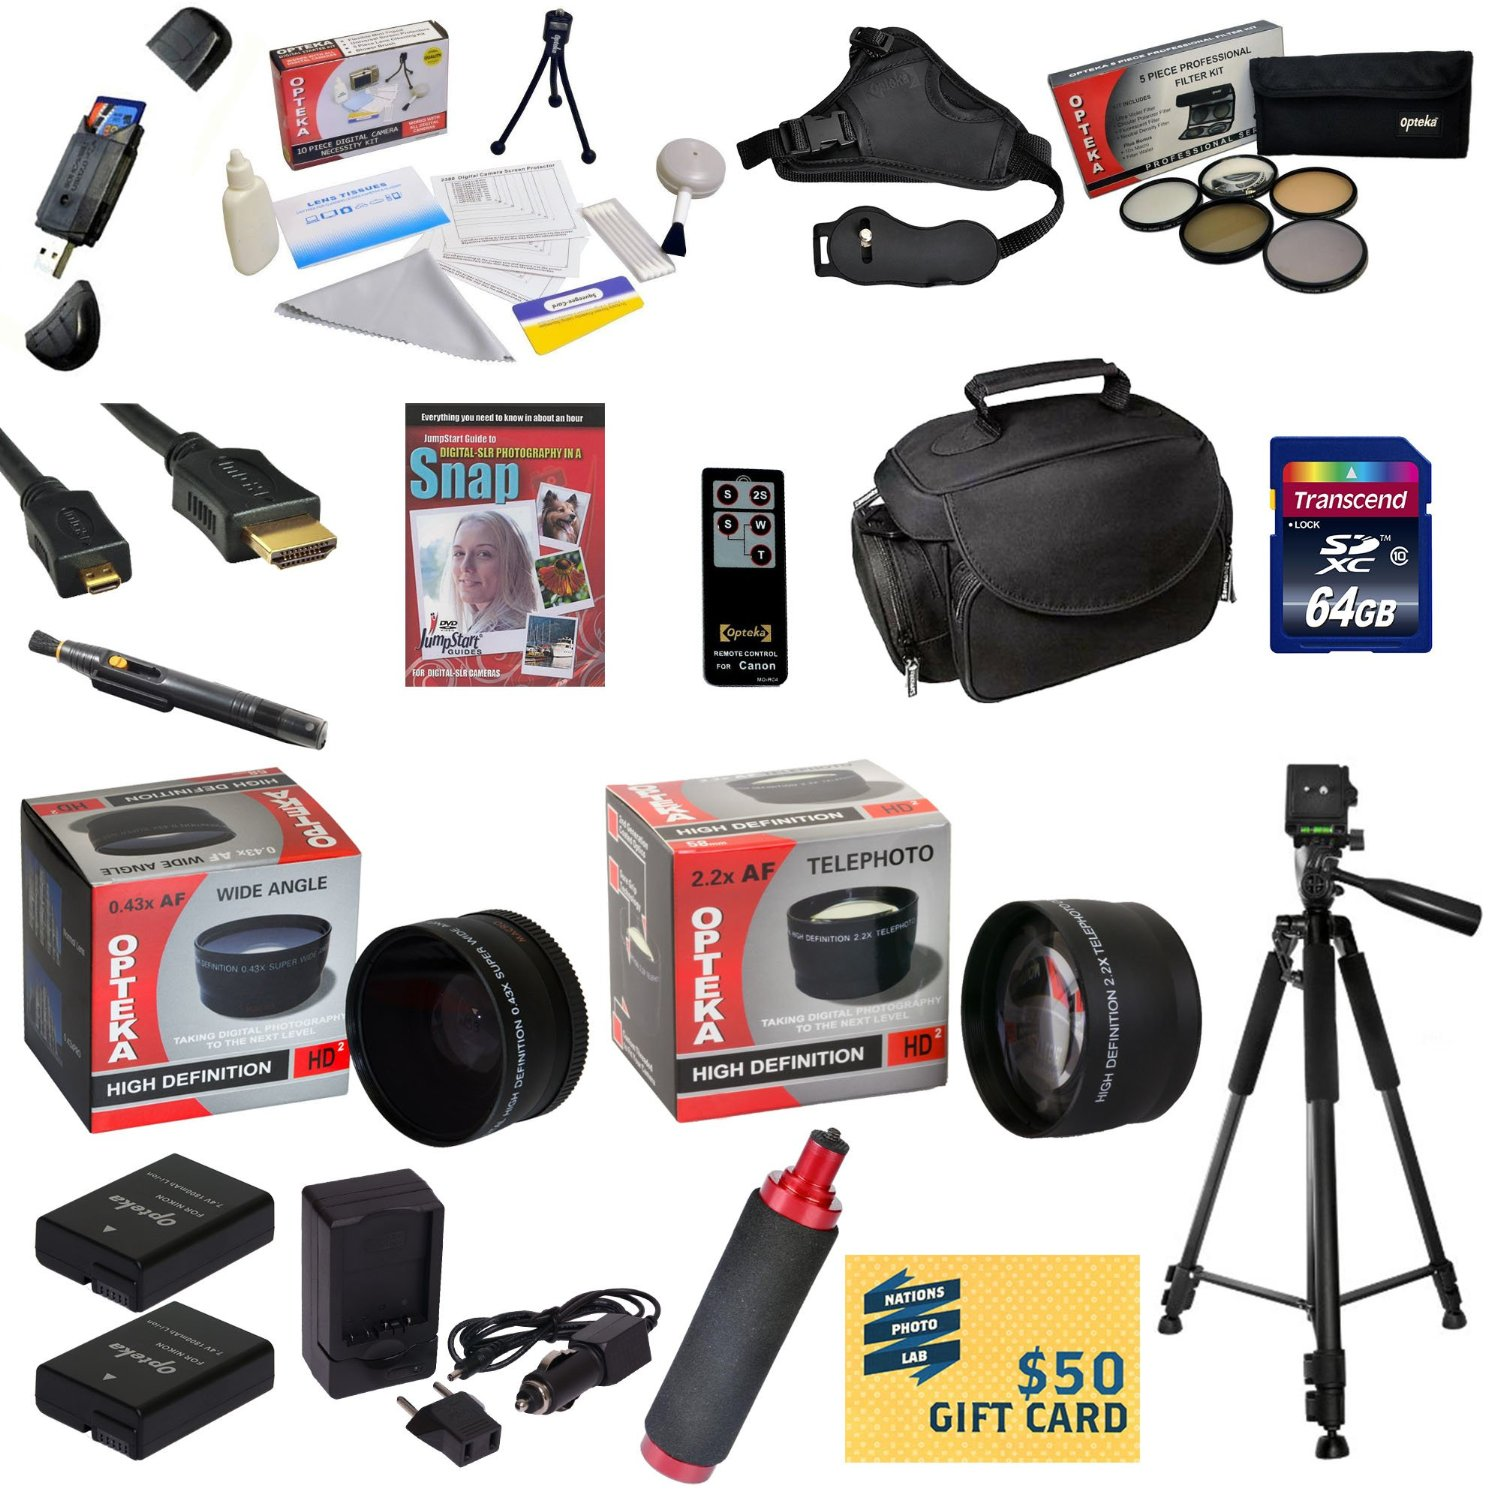 Ultimate Kit for Nikon D50, D70, D80, D90 with 64GB SDXC Card, 2 Batteries, Charger, 0.43x & 2.2x Lens, 5 PC Filter Kit, HDMI, Case, Tripod, Handgrip, Lens Pen, Cleaning Kit, DVD, $50 Gift Card, More